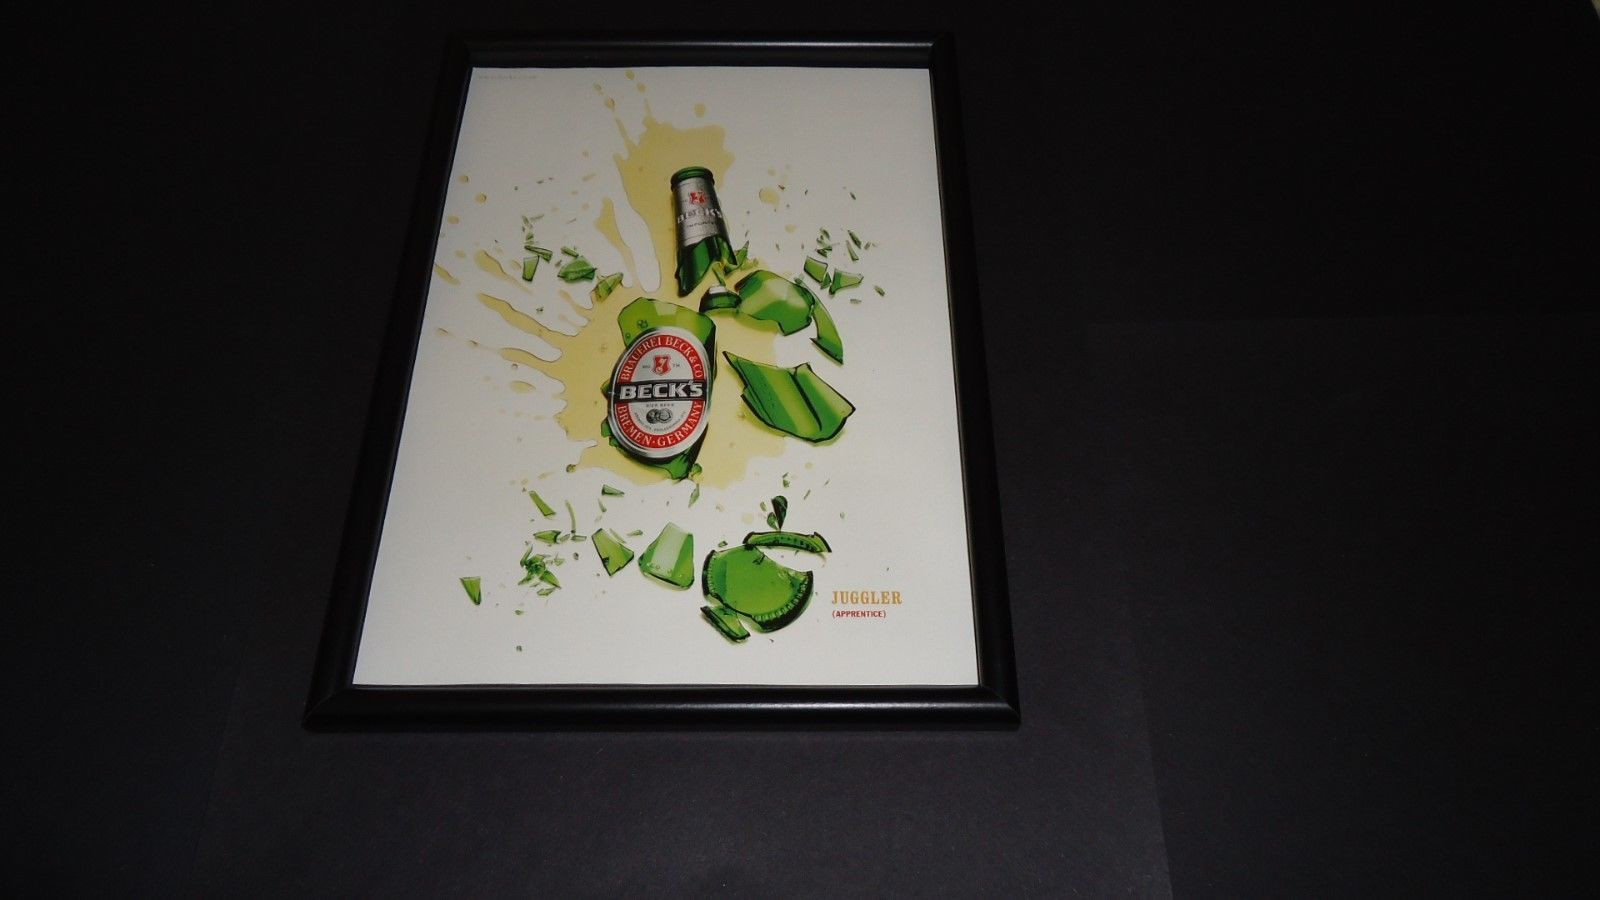 Primary image for Beck's Beer Juggler(Apprentice)-2002 Original advert framed